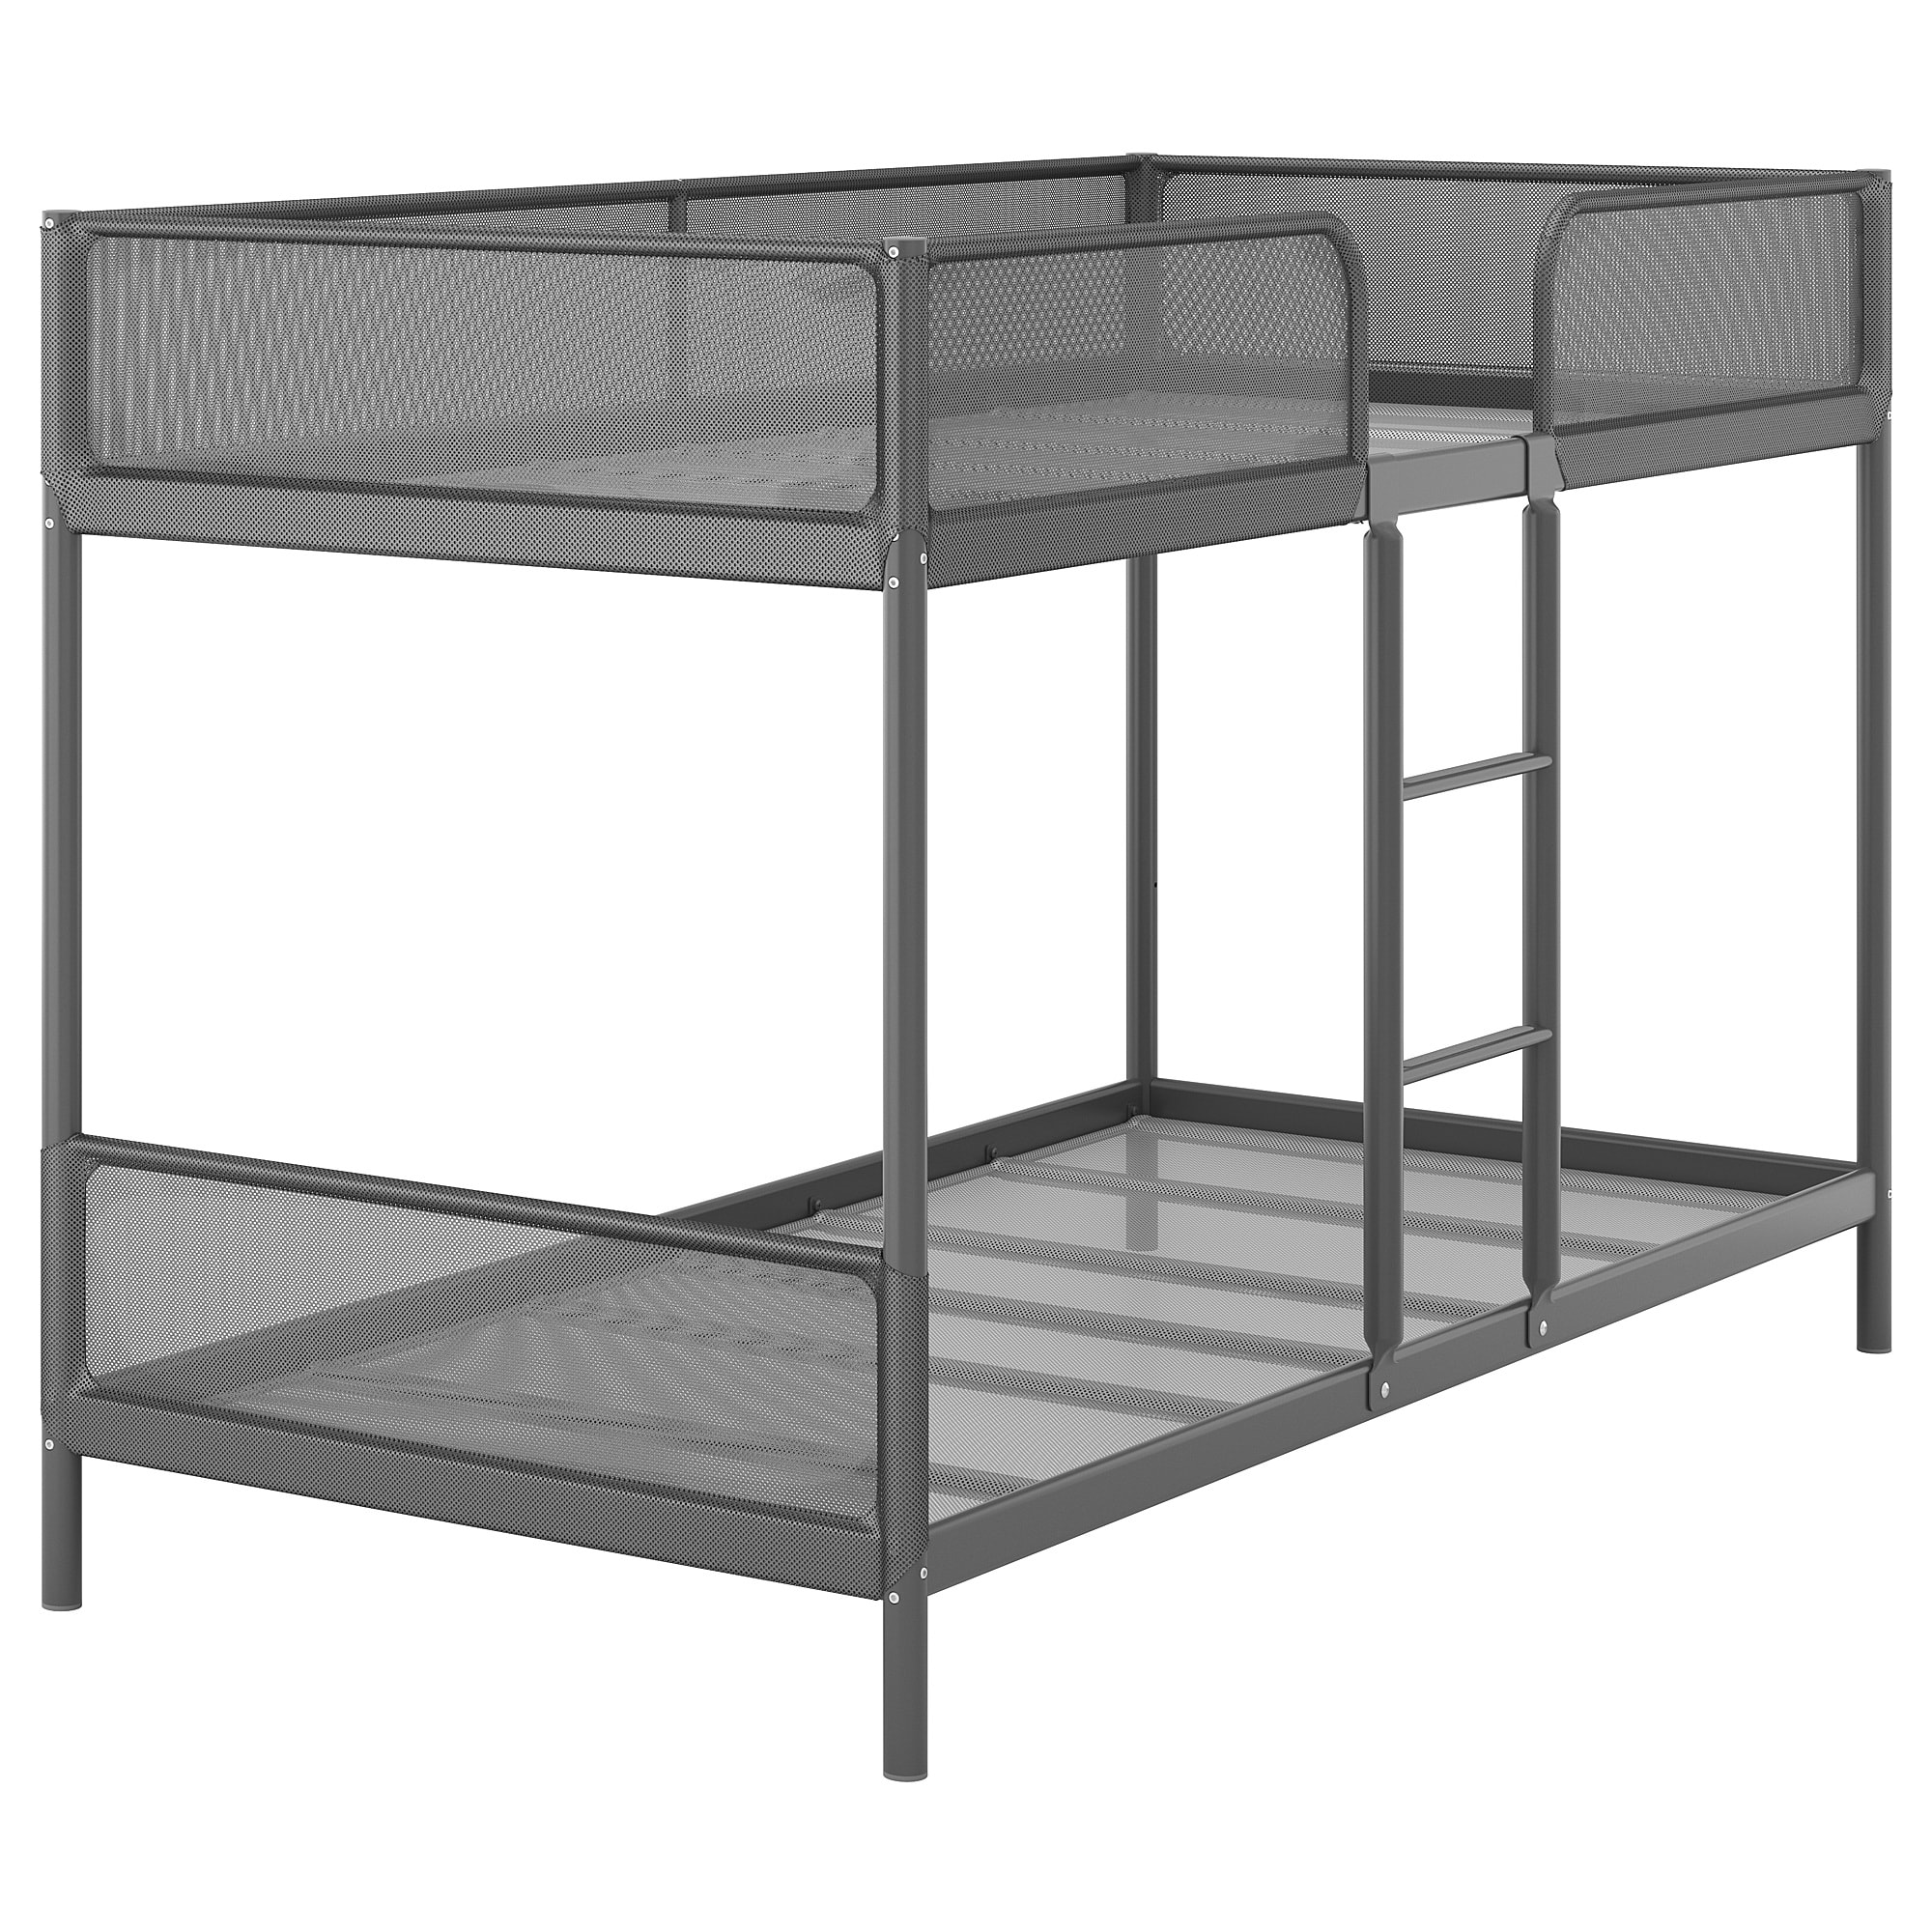 IKEA TUFFING Bunk bed frame dark gray Bunk beds, Bed